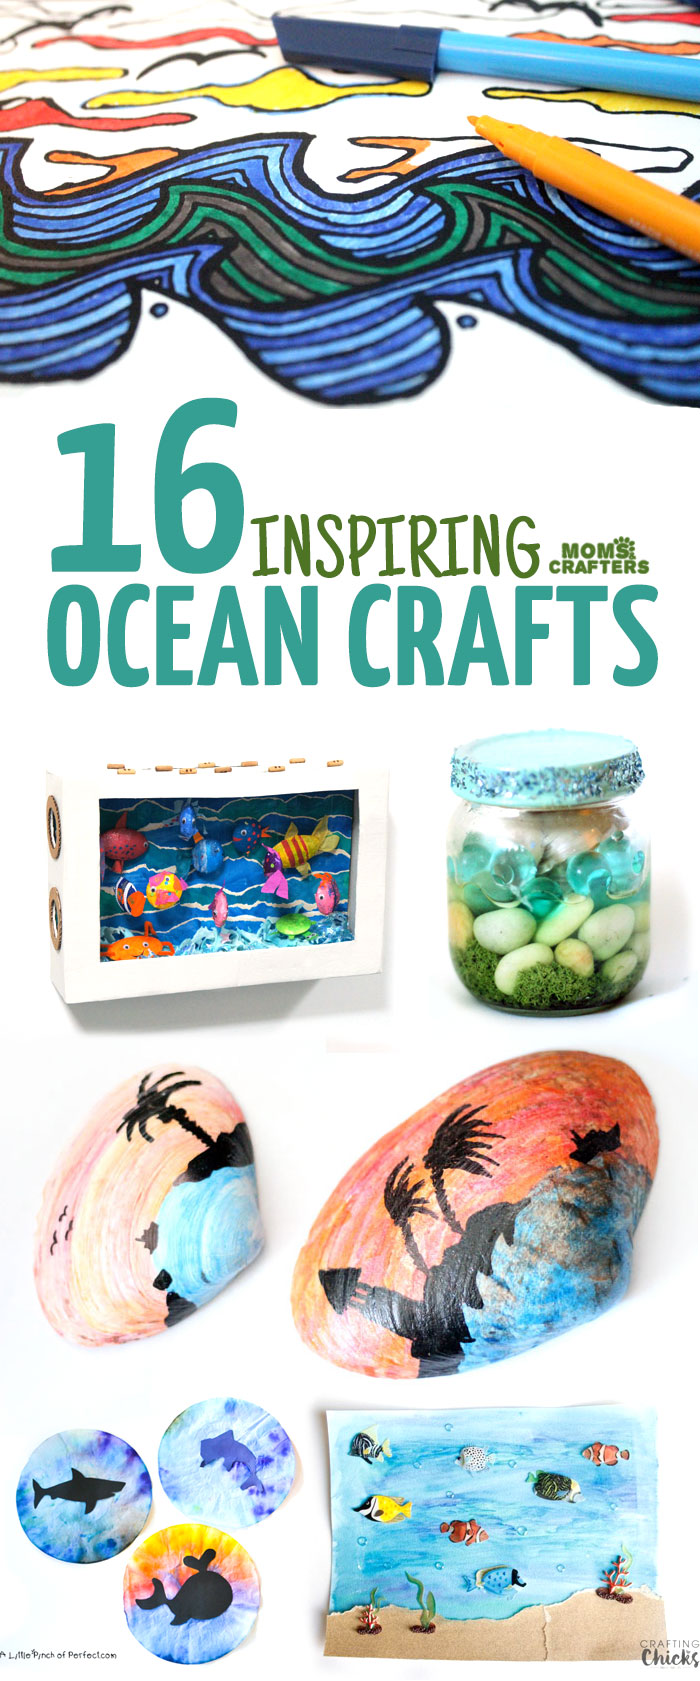 16 ocean crafts for kids and adults Summer craft ideas for adults